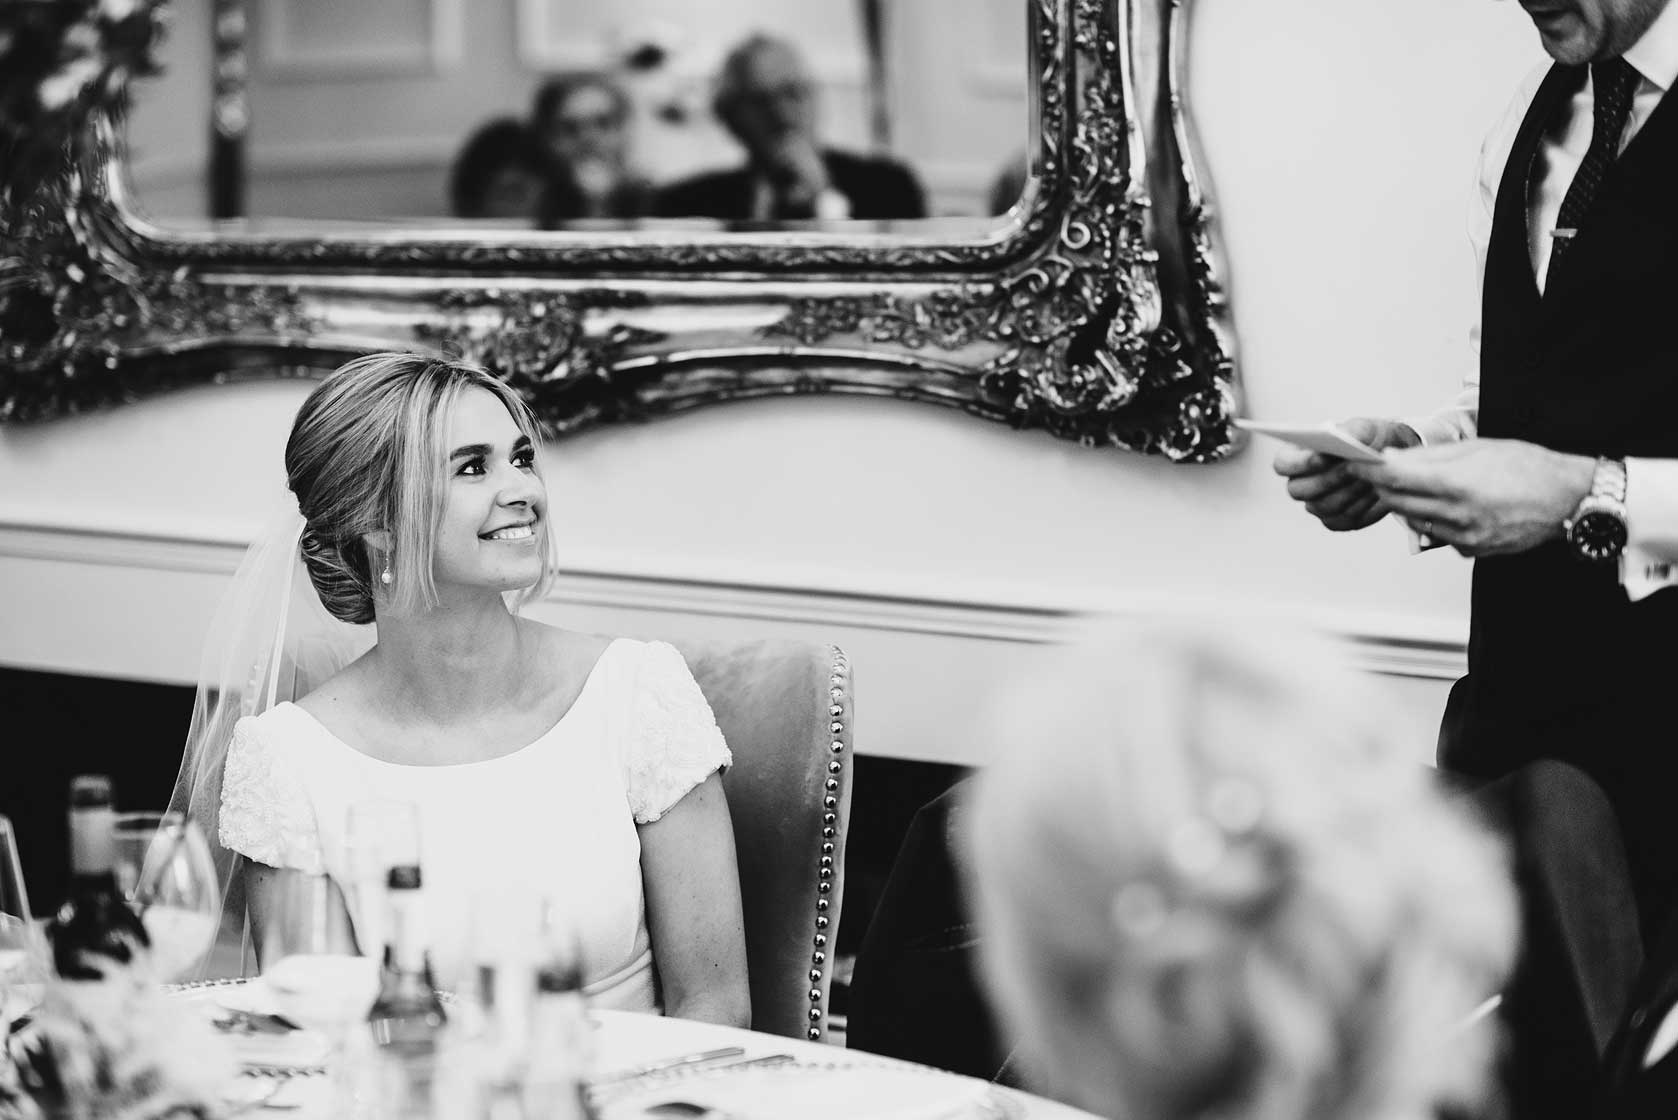 Reportage Wedding Photography at The Old Vicarage